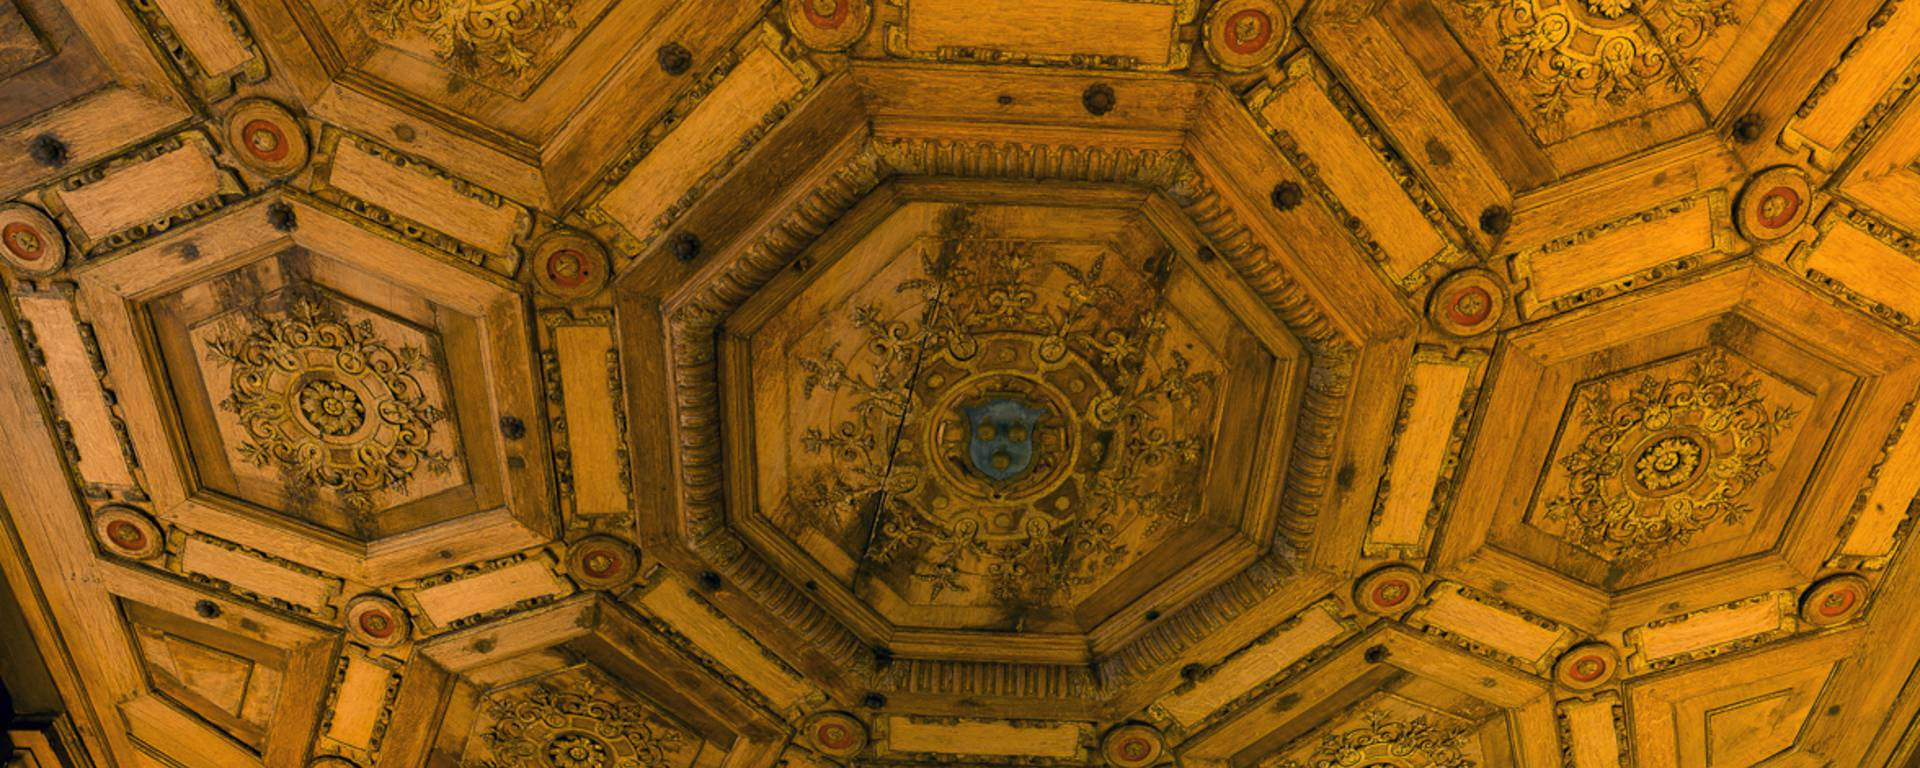 Ceiling of the Château de Beauregard